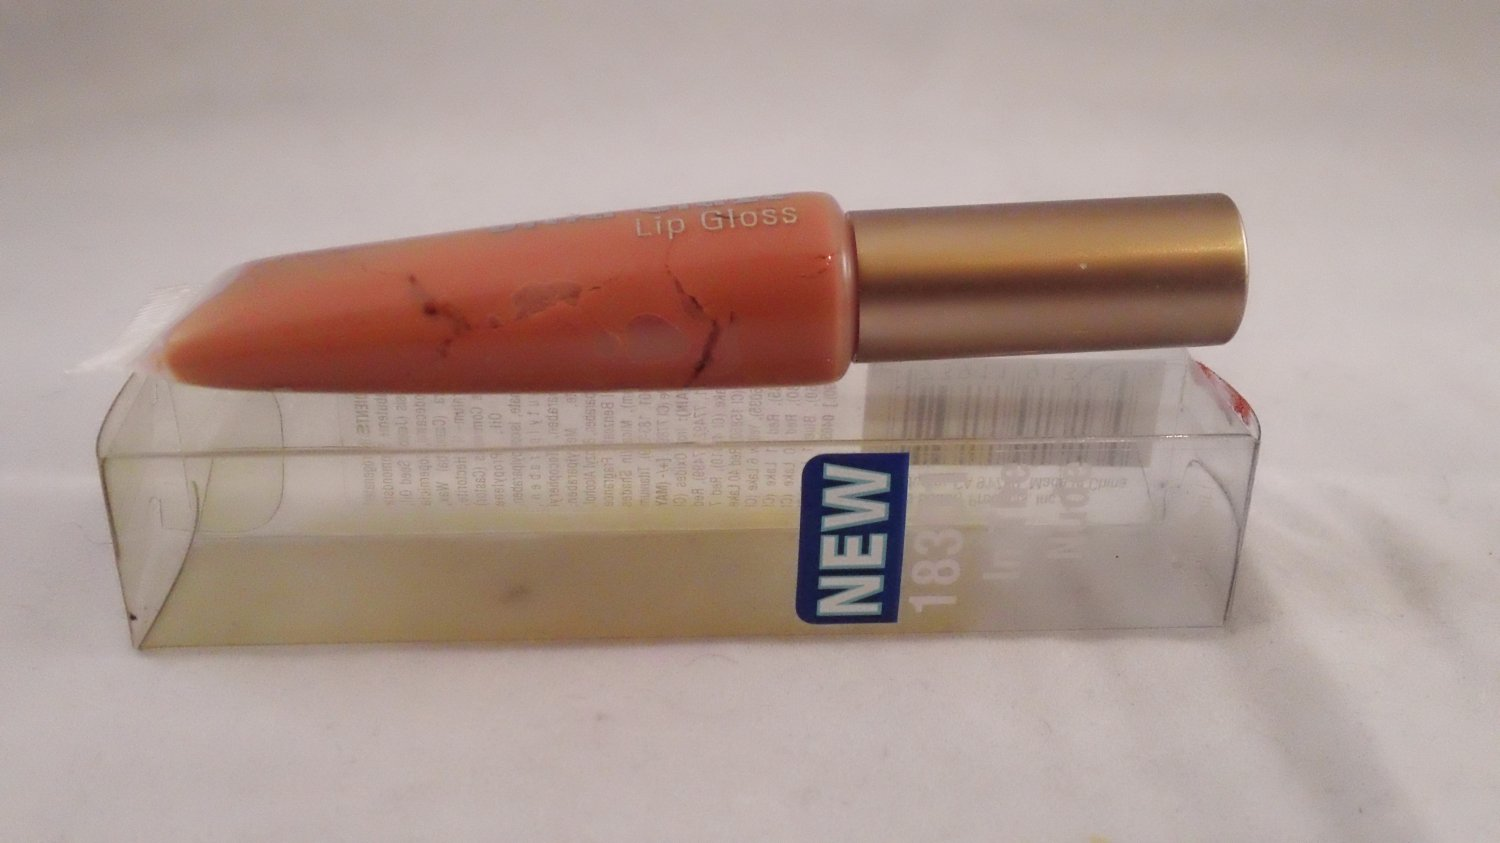 Tropez Ultra Glaze Lip Gloss #18301 In the Nude lipgloss